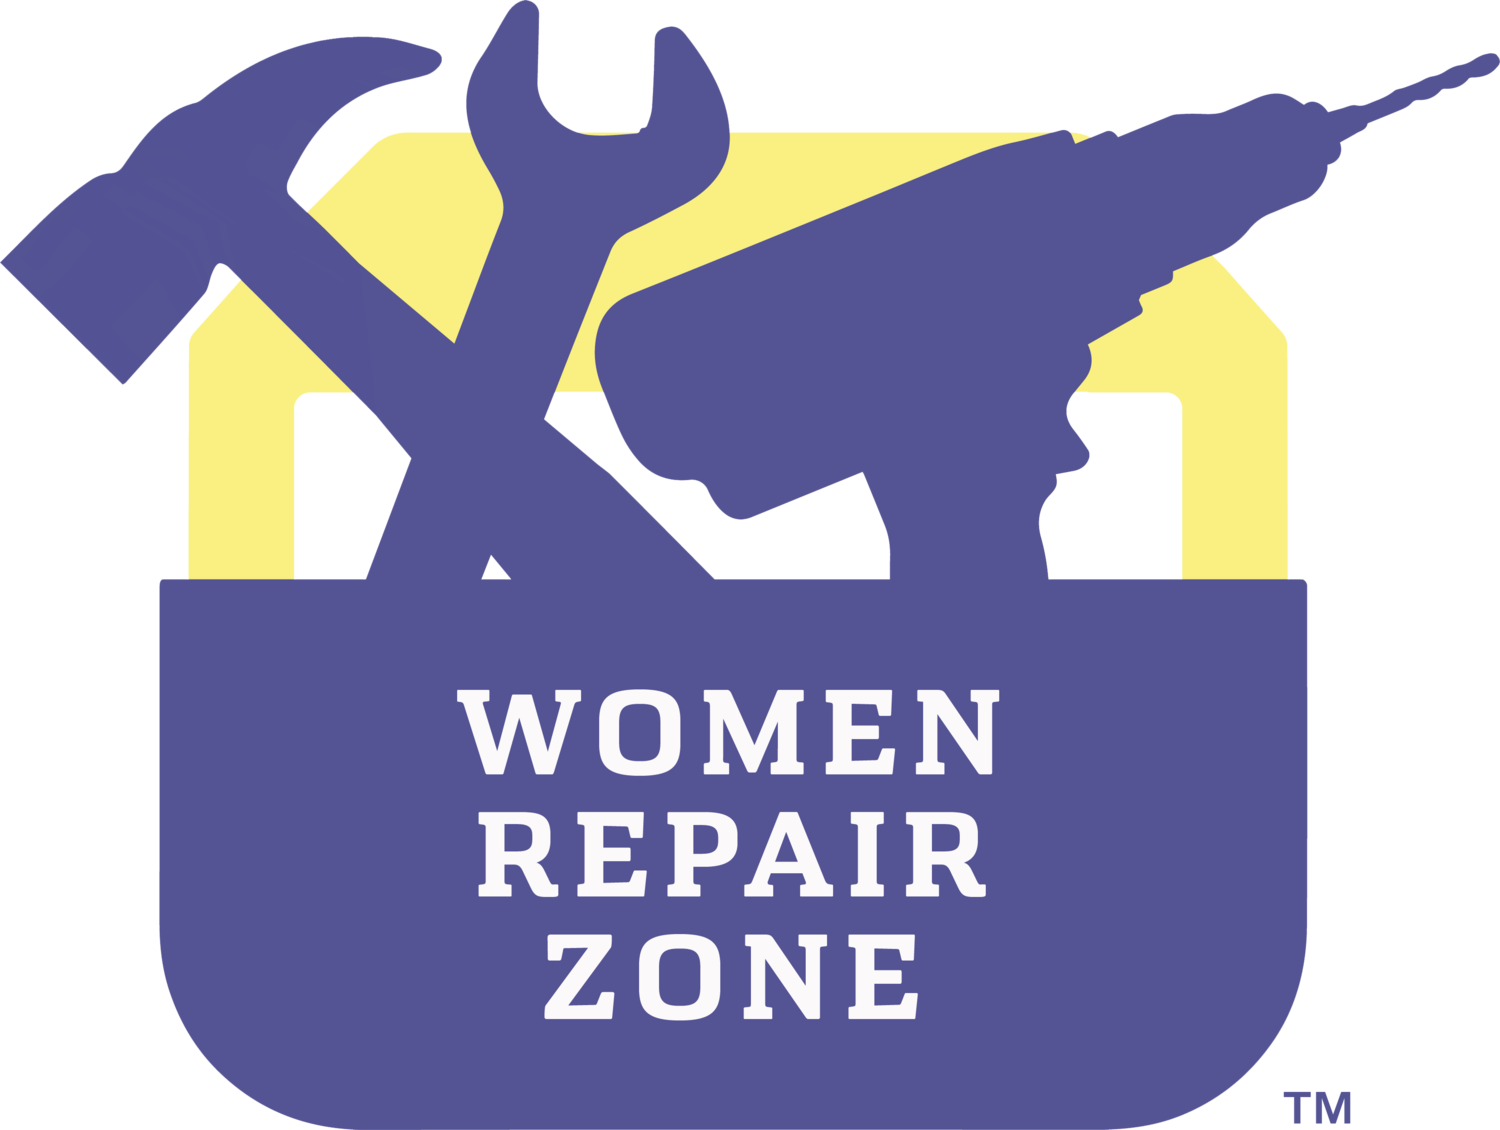 Women Repair Zone